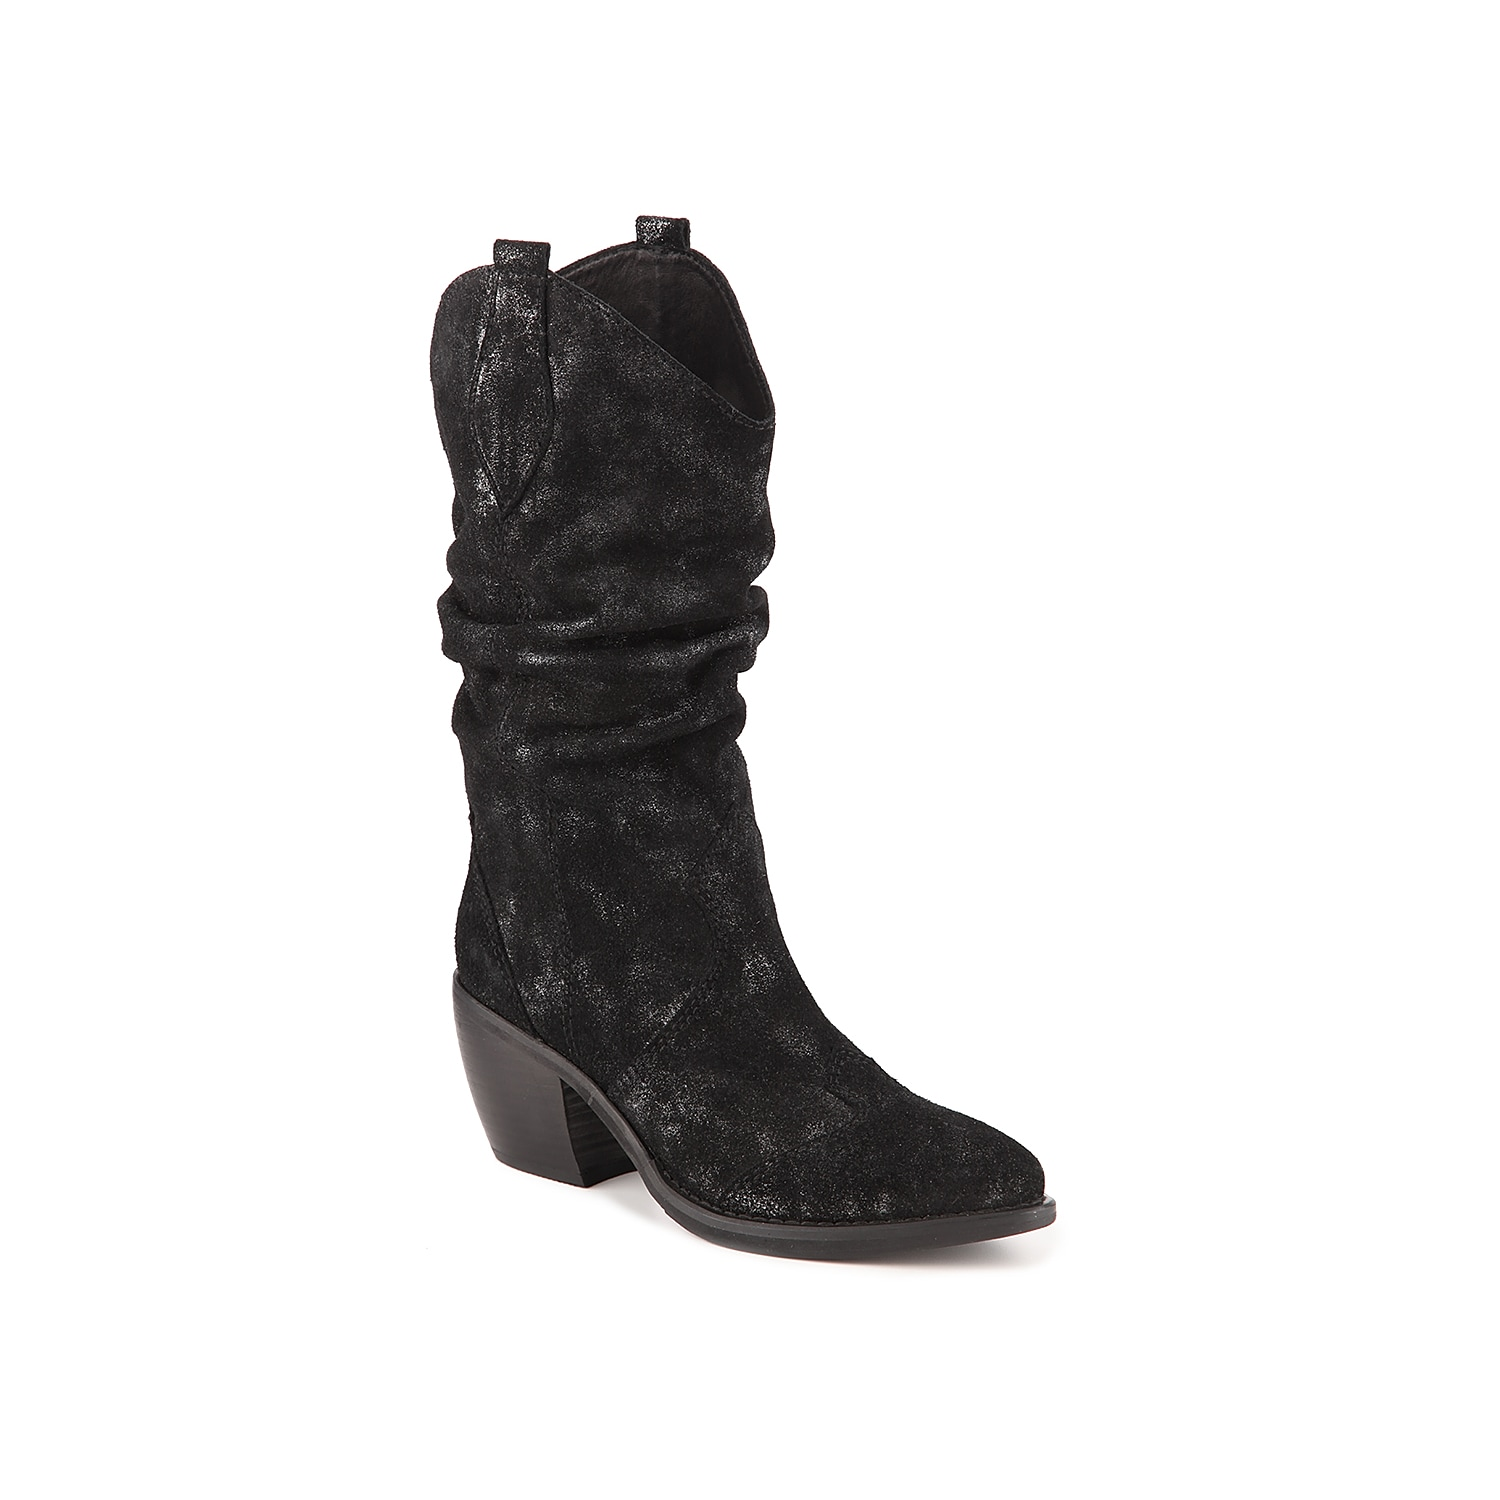 Give off western vibes with the Catkin boot from VANELi. Tumbled suede and slouchy styling lend casual charm to this cowgirl pair that match your statement belts and silver jewelry! Click here for Boot Measuring Guide.